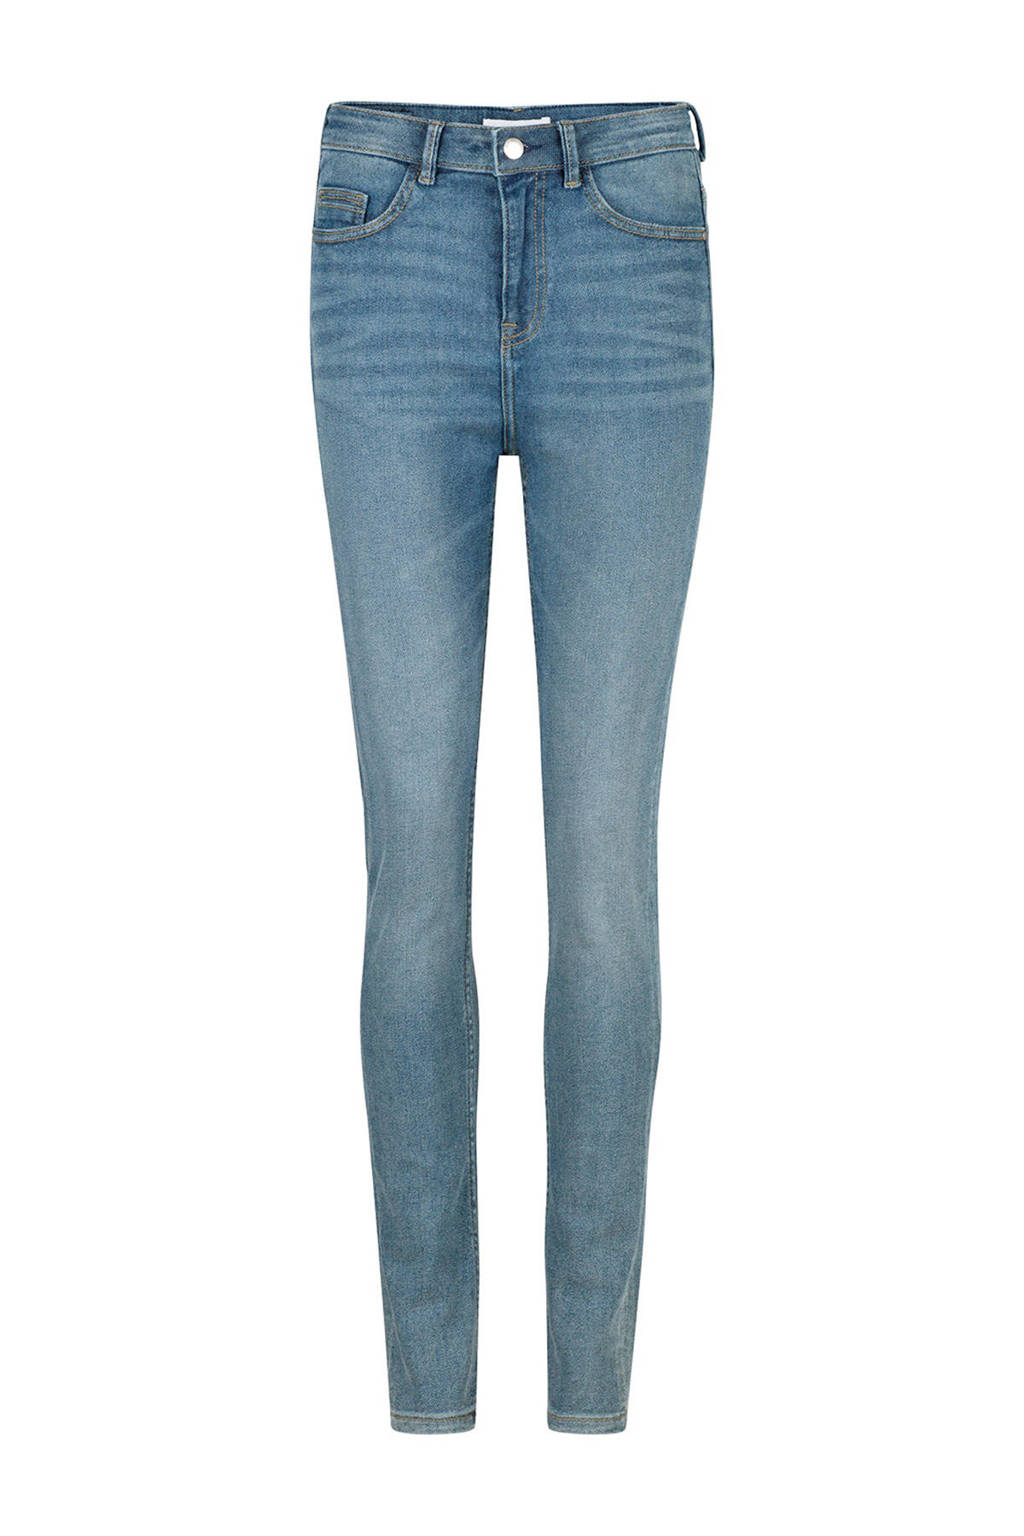 WE Fashion Blue Ridge high waist skinny jeans, Light denim